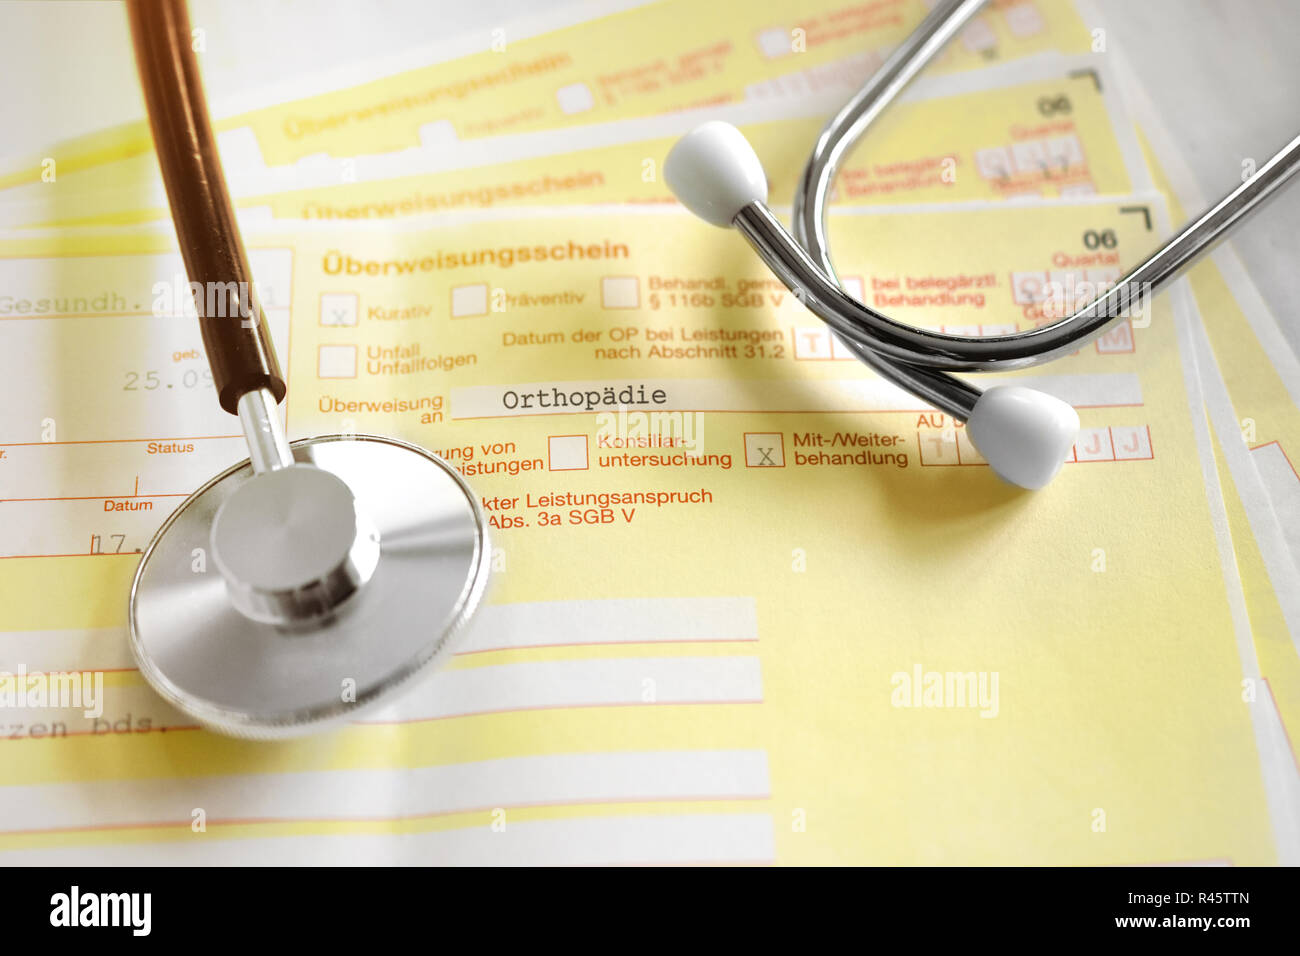 Letter of transfer to the orthopedist from the family doctor - Stock Image